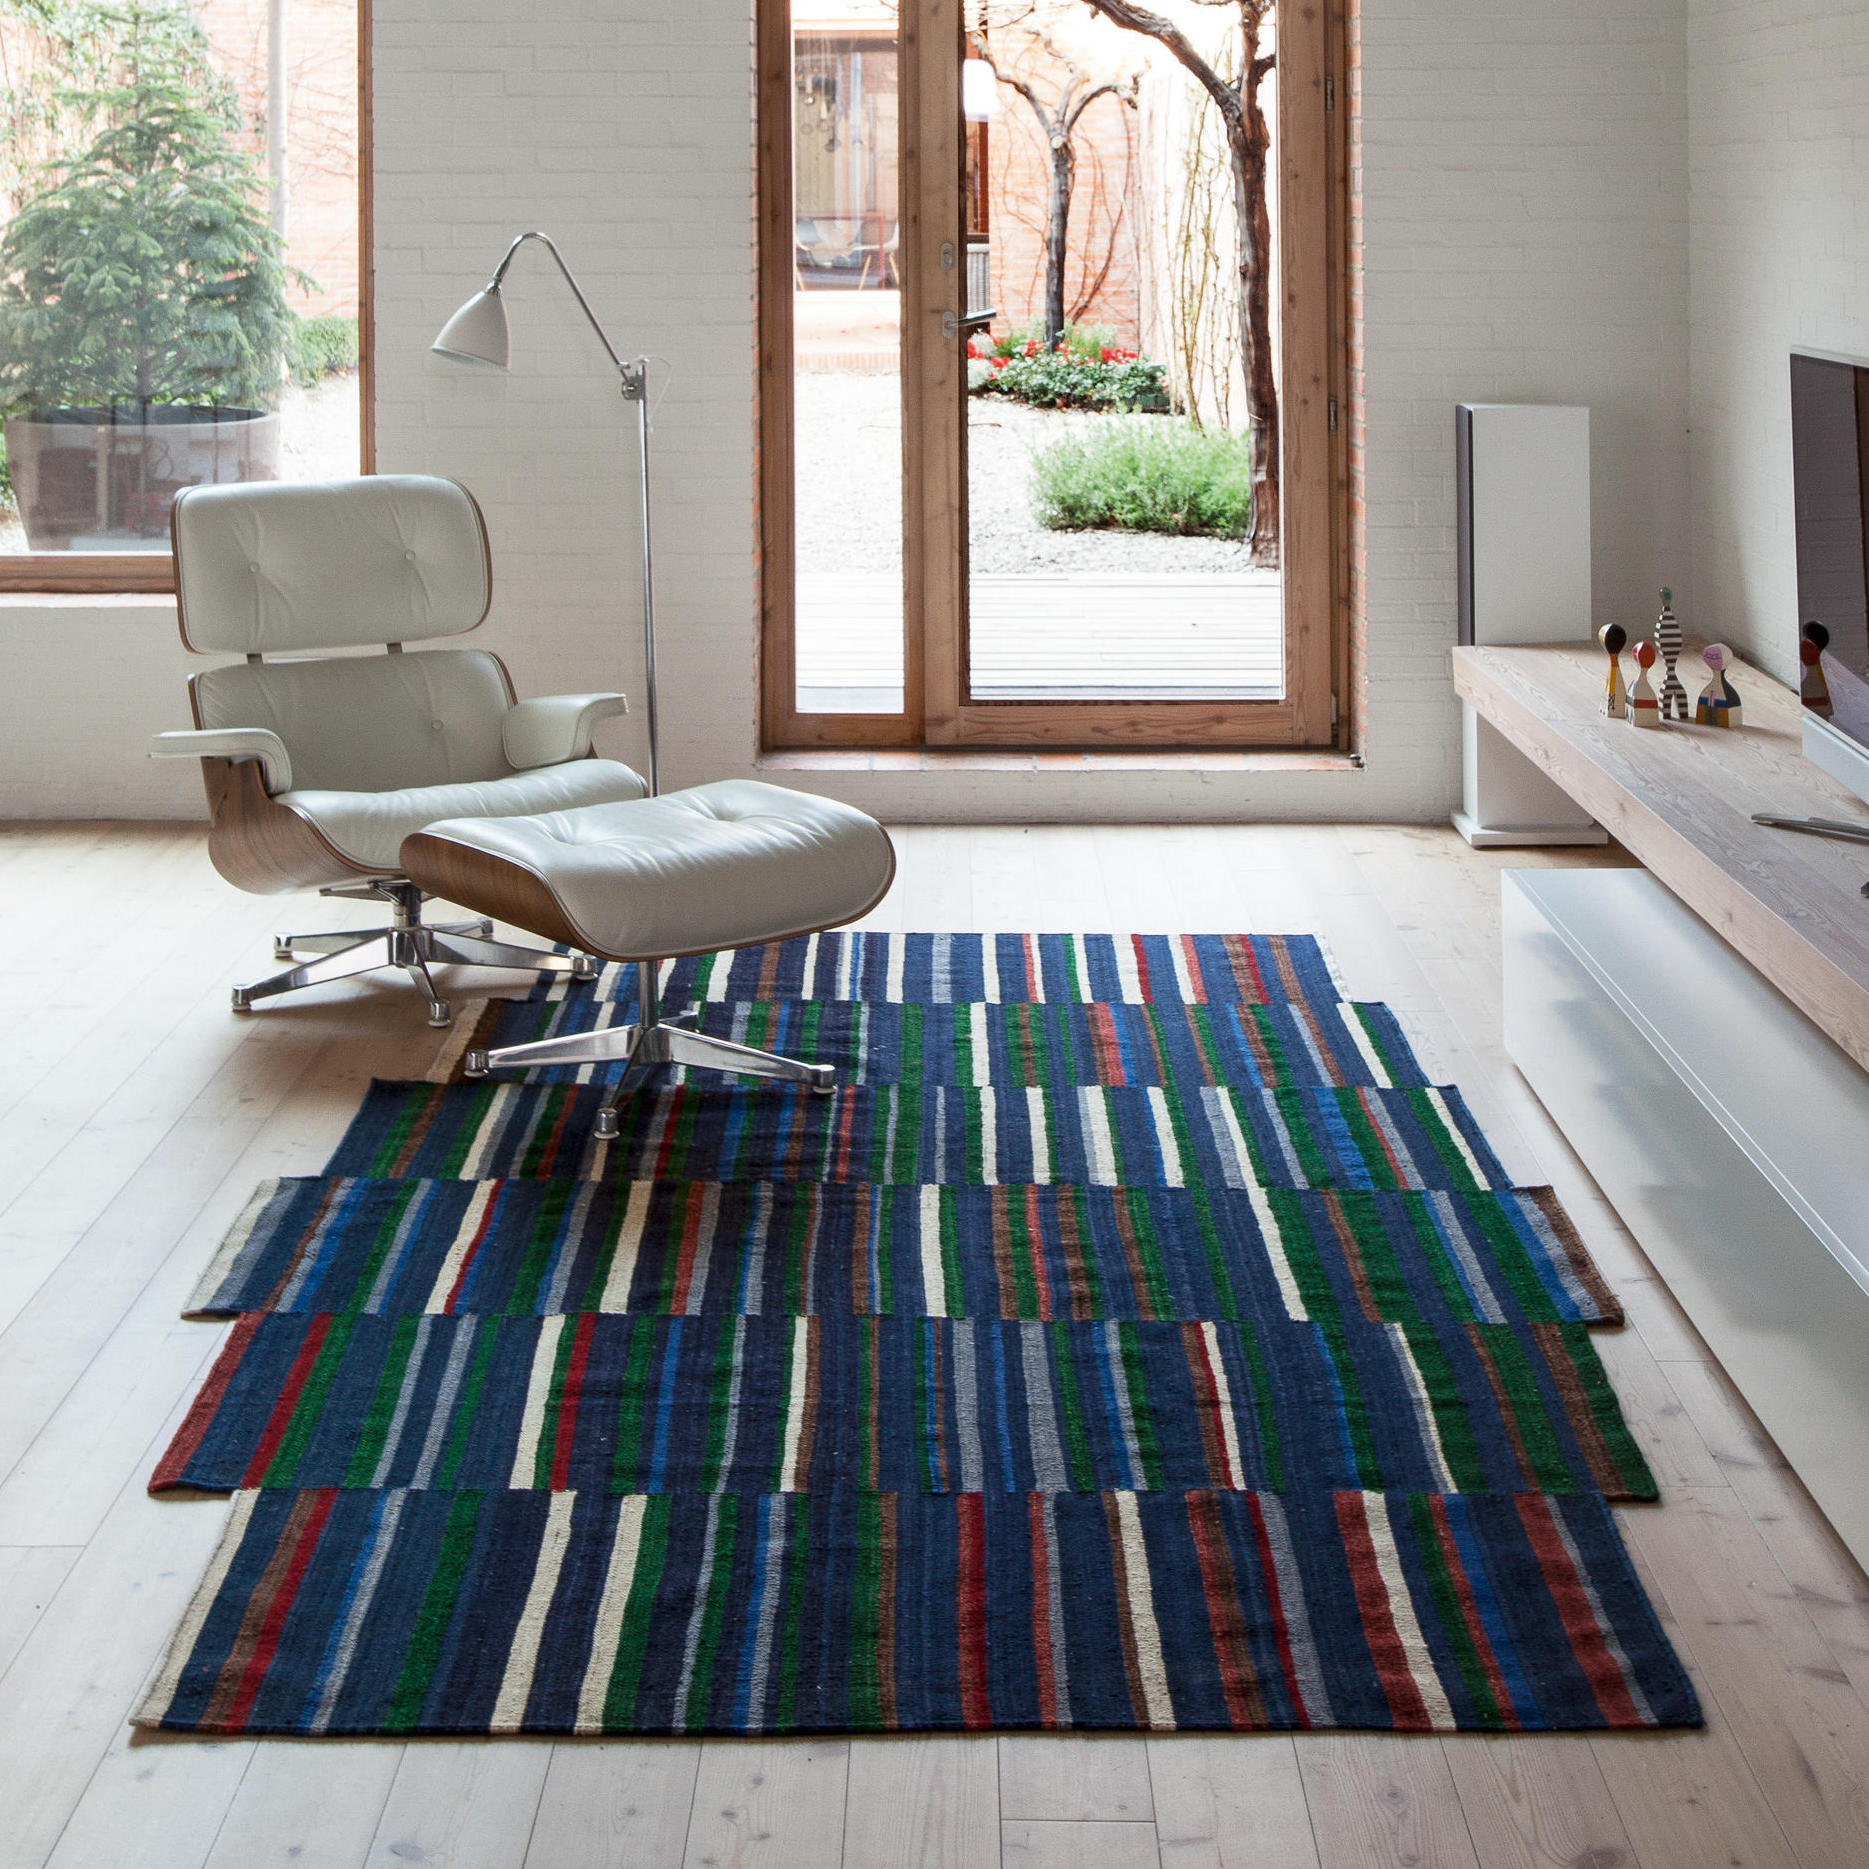 Nanimarquina tapis lattice design ronan erwan bouroullec for Scandic design